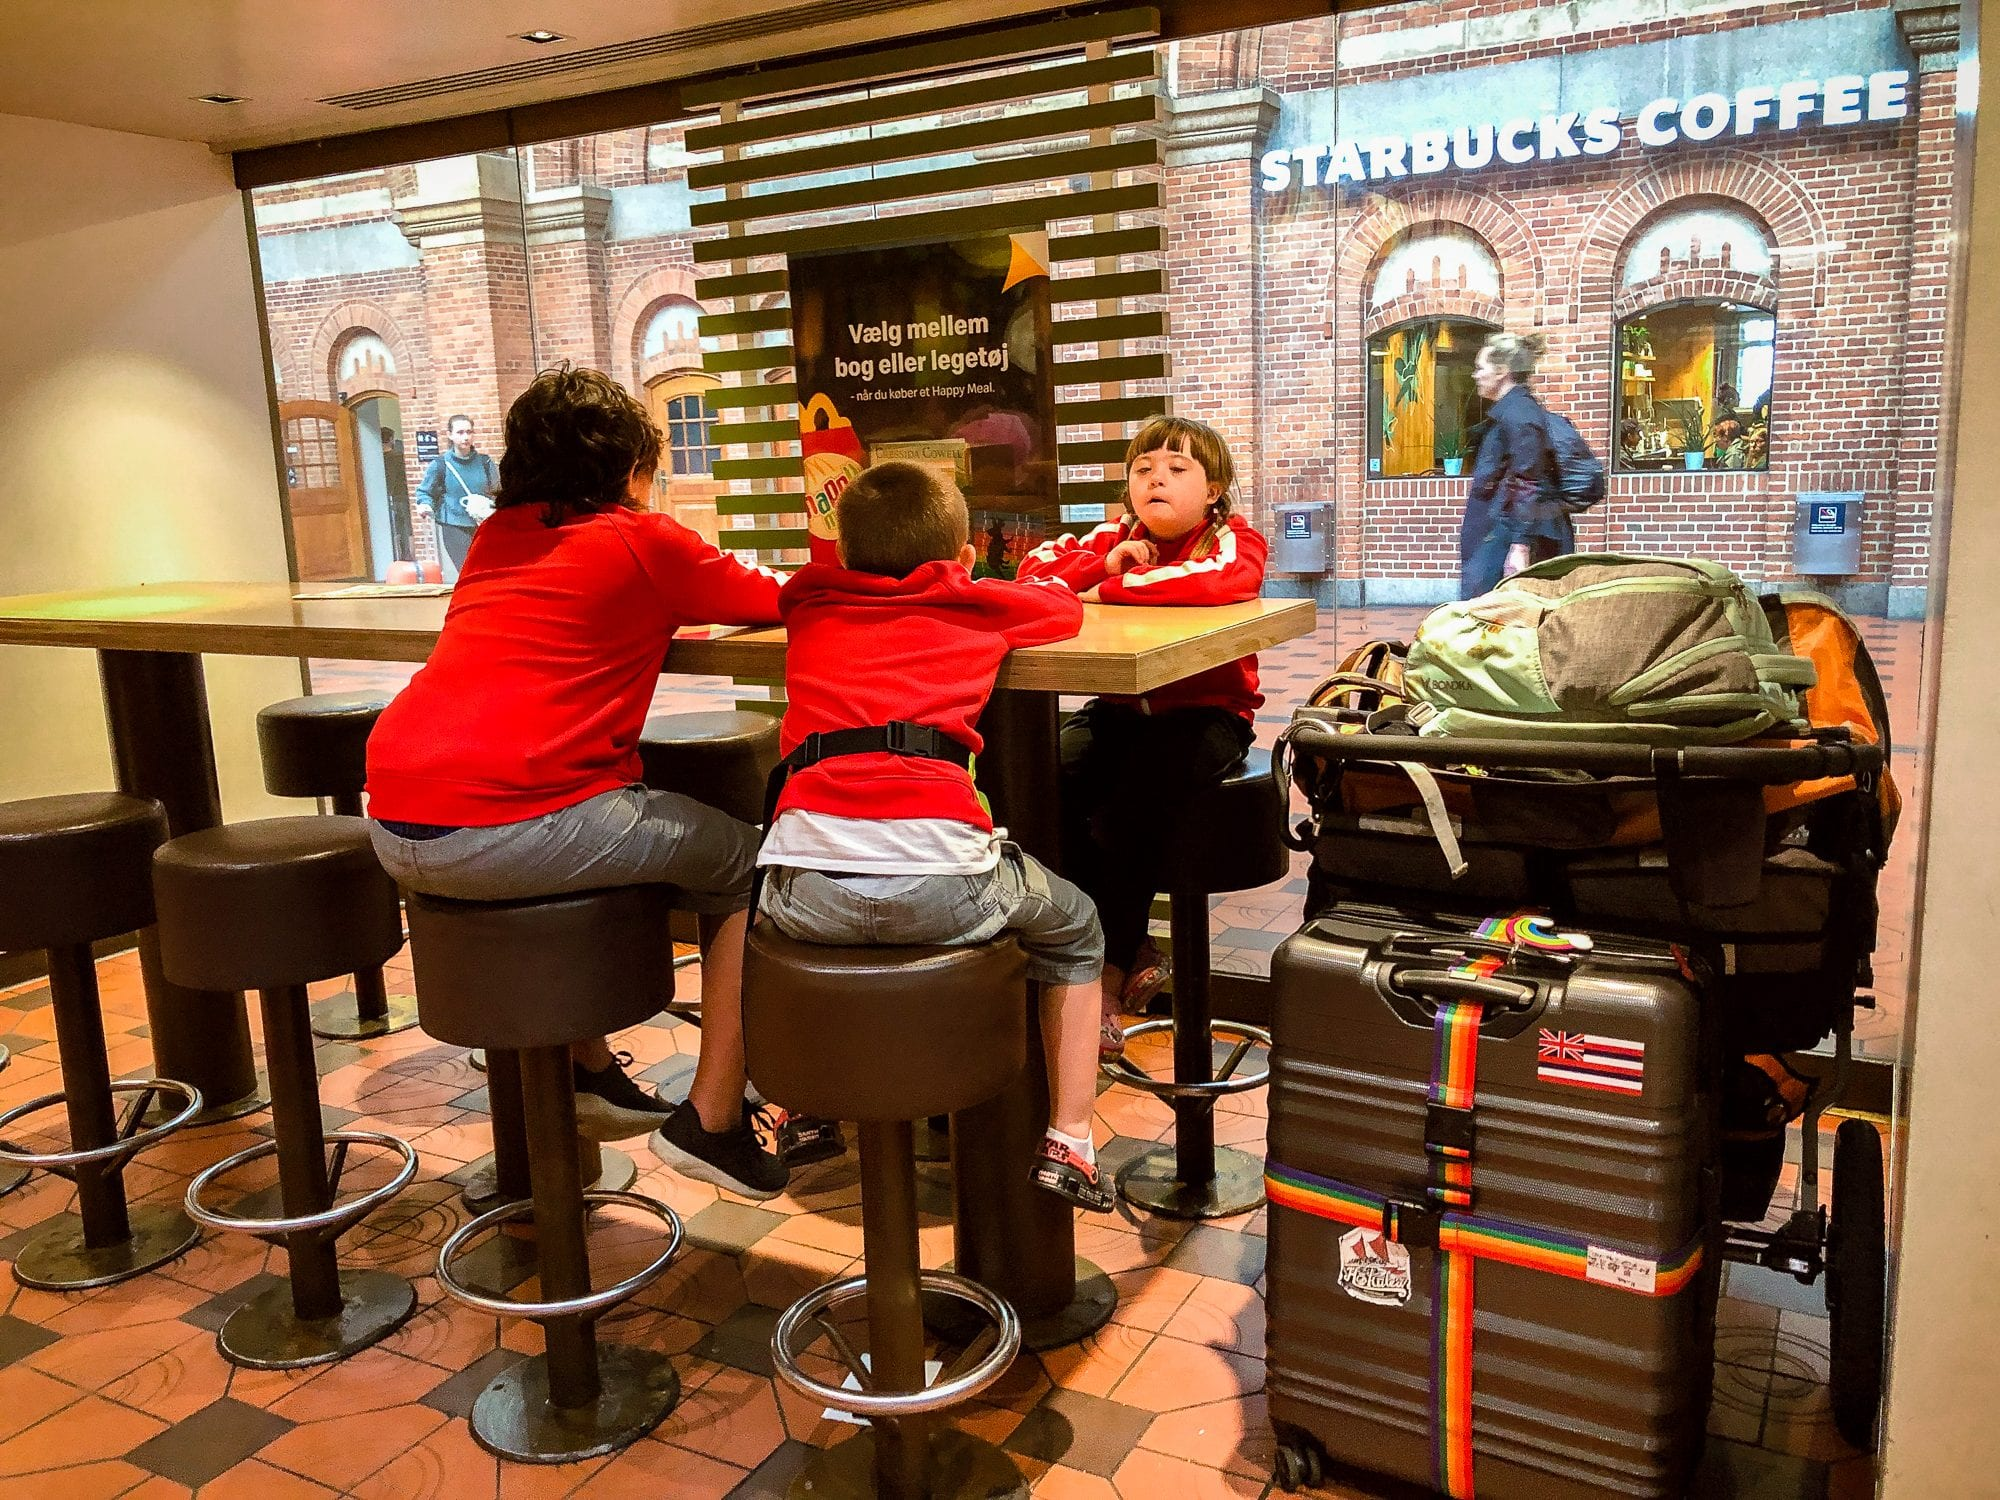 copenhagen train station mcdonalds